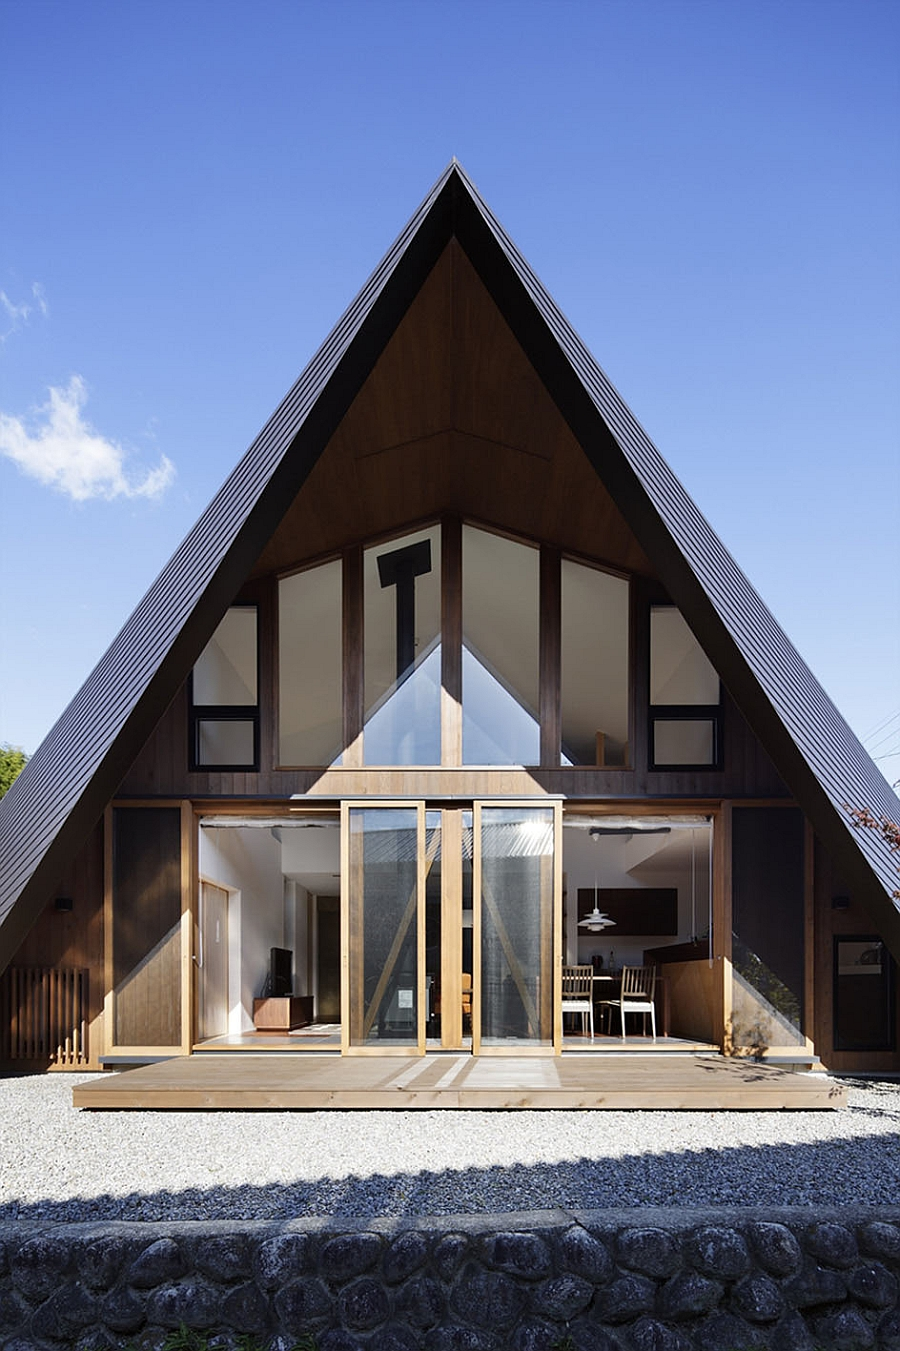 Unique exterior of the cool Origami house in Japan Creative Origami House In Japan Combines A Distinct Silhouette With Modern Minimalism